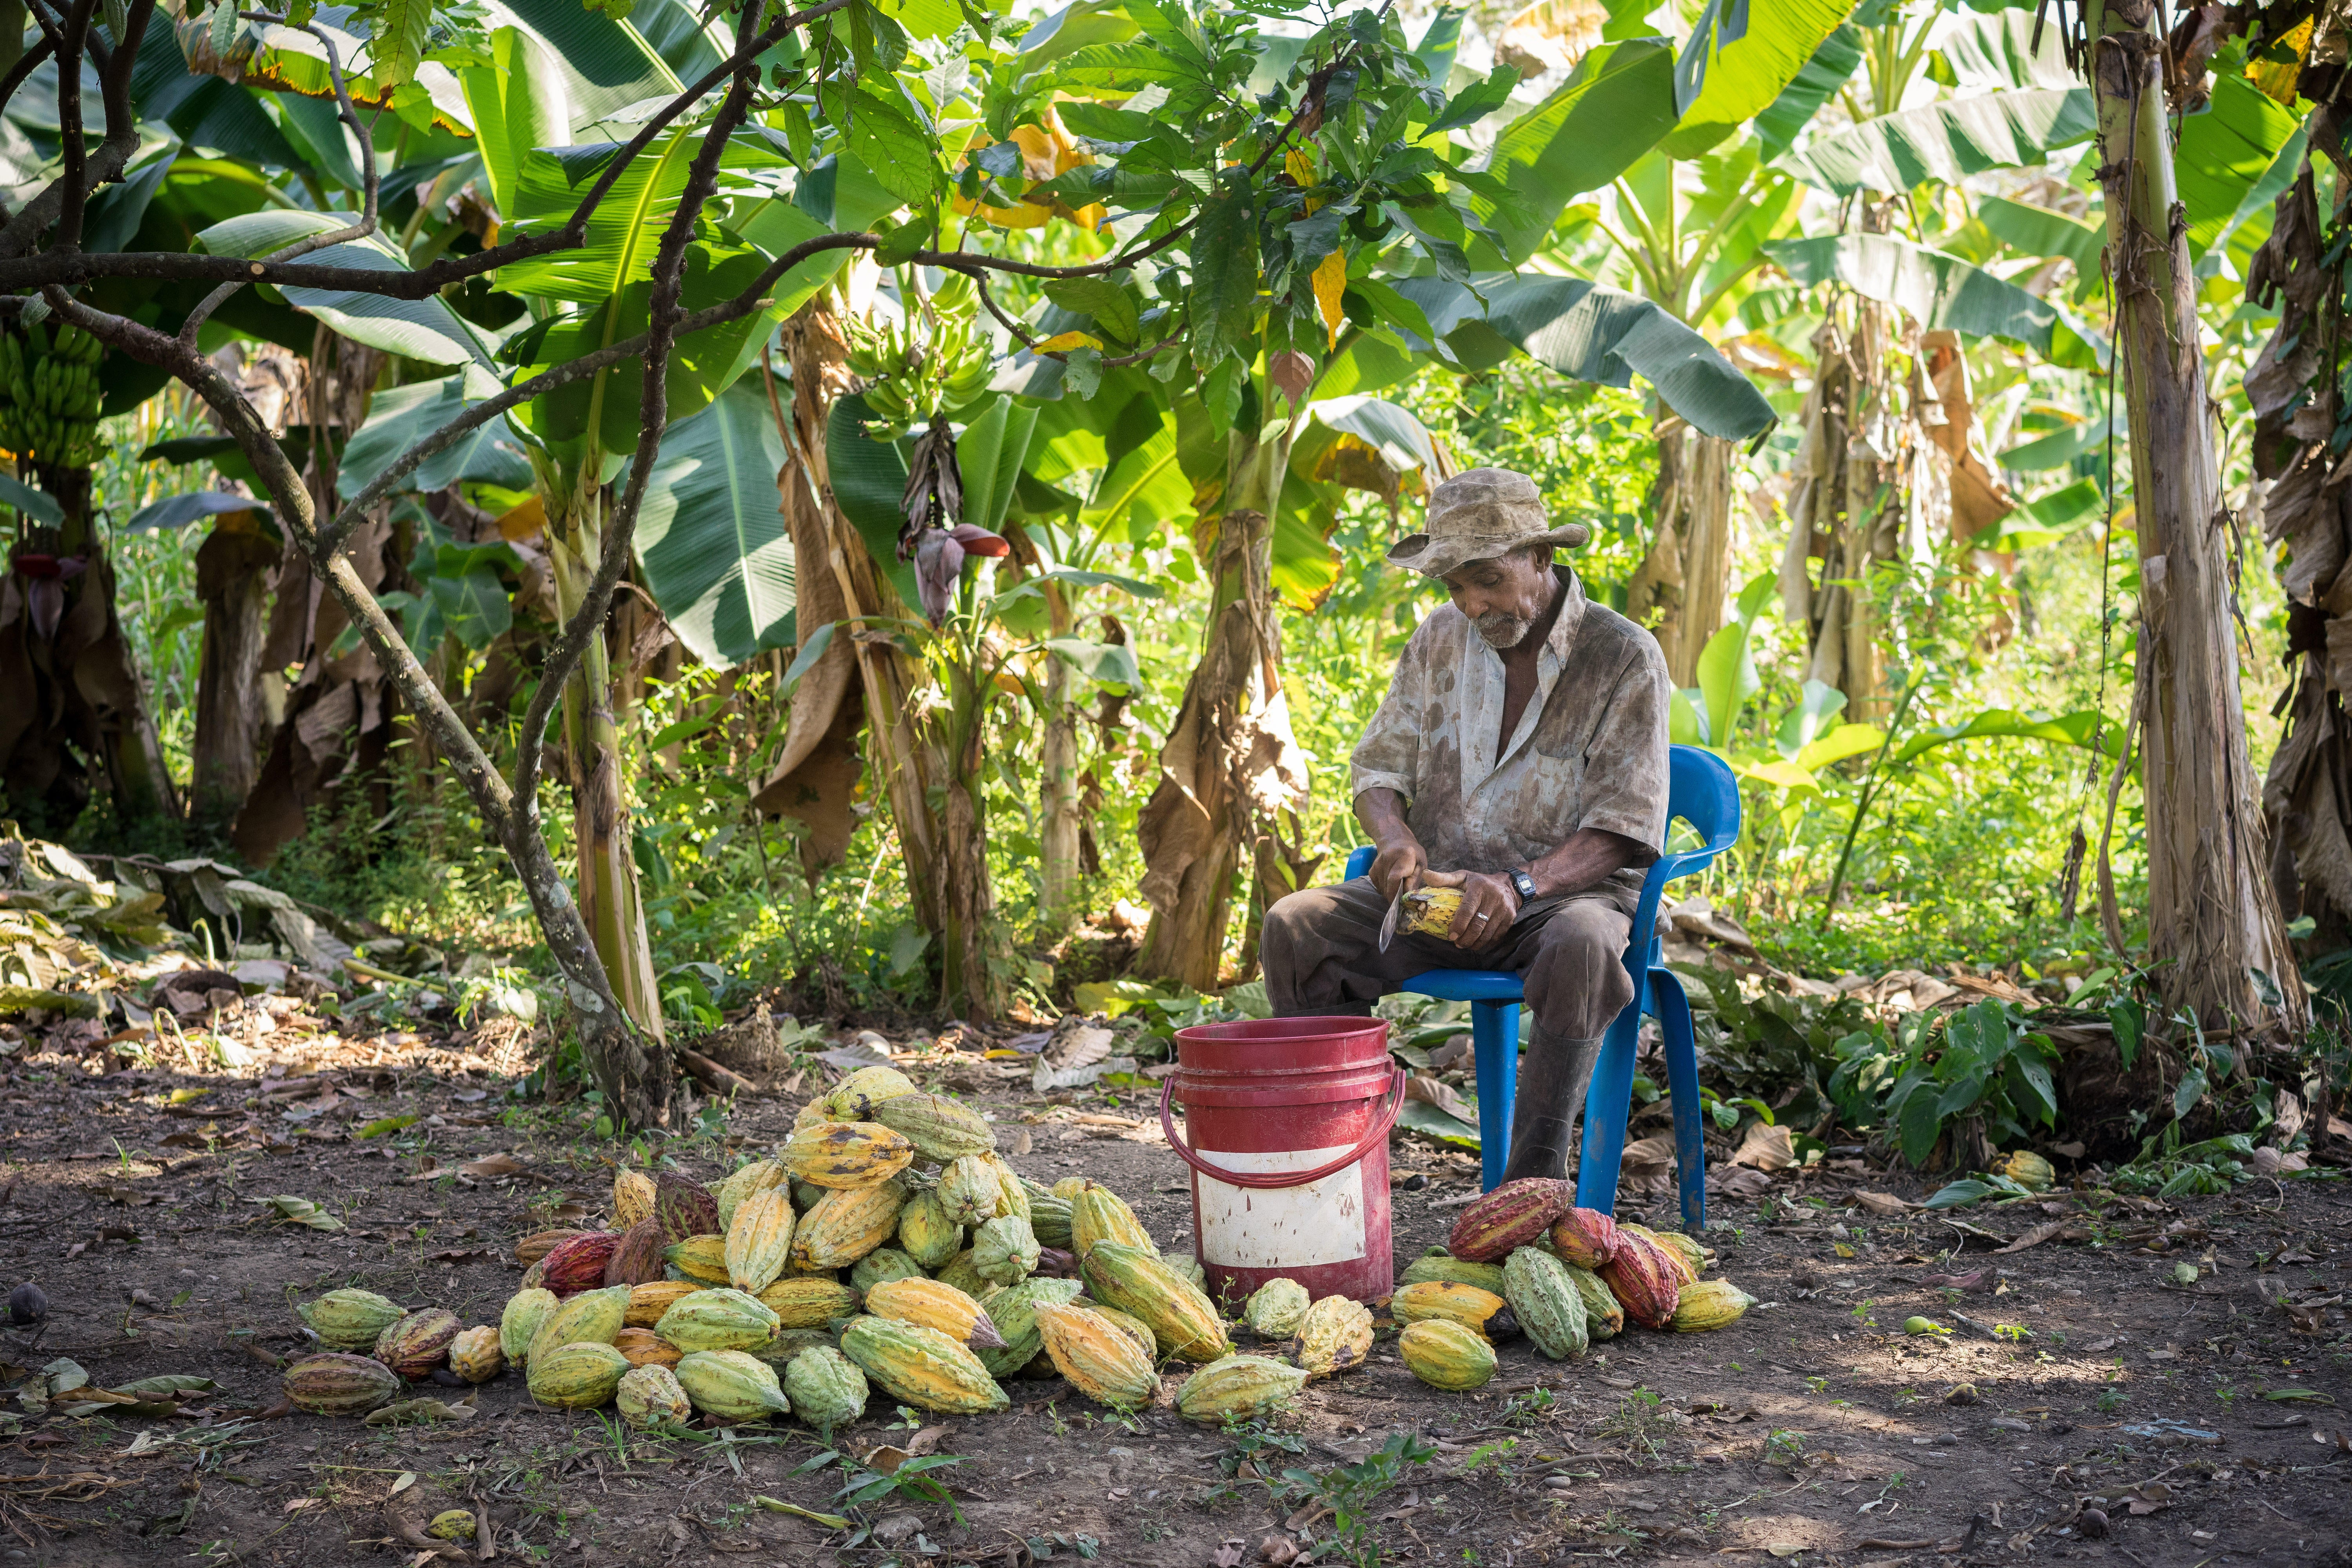 A farmer cuts into the rind of ripe cocoa pods to remove the pulp and cocoa seeds.